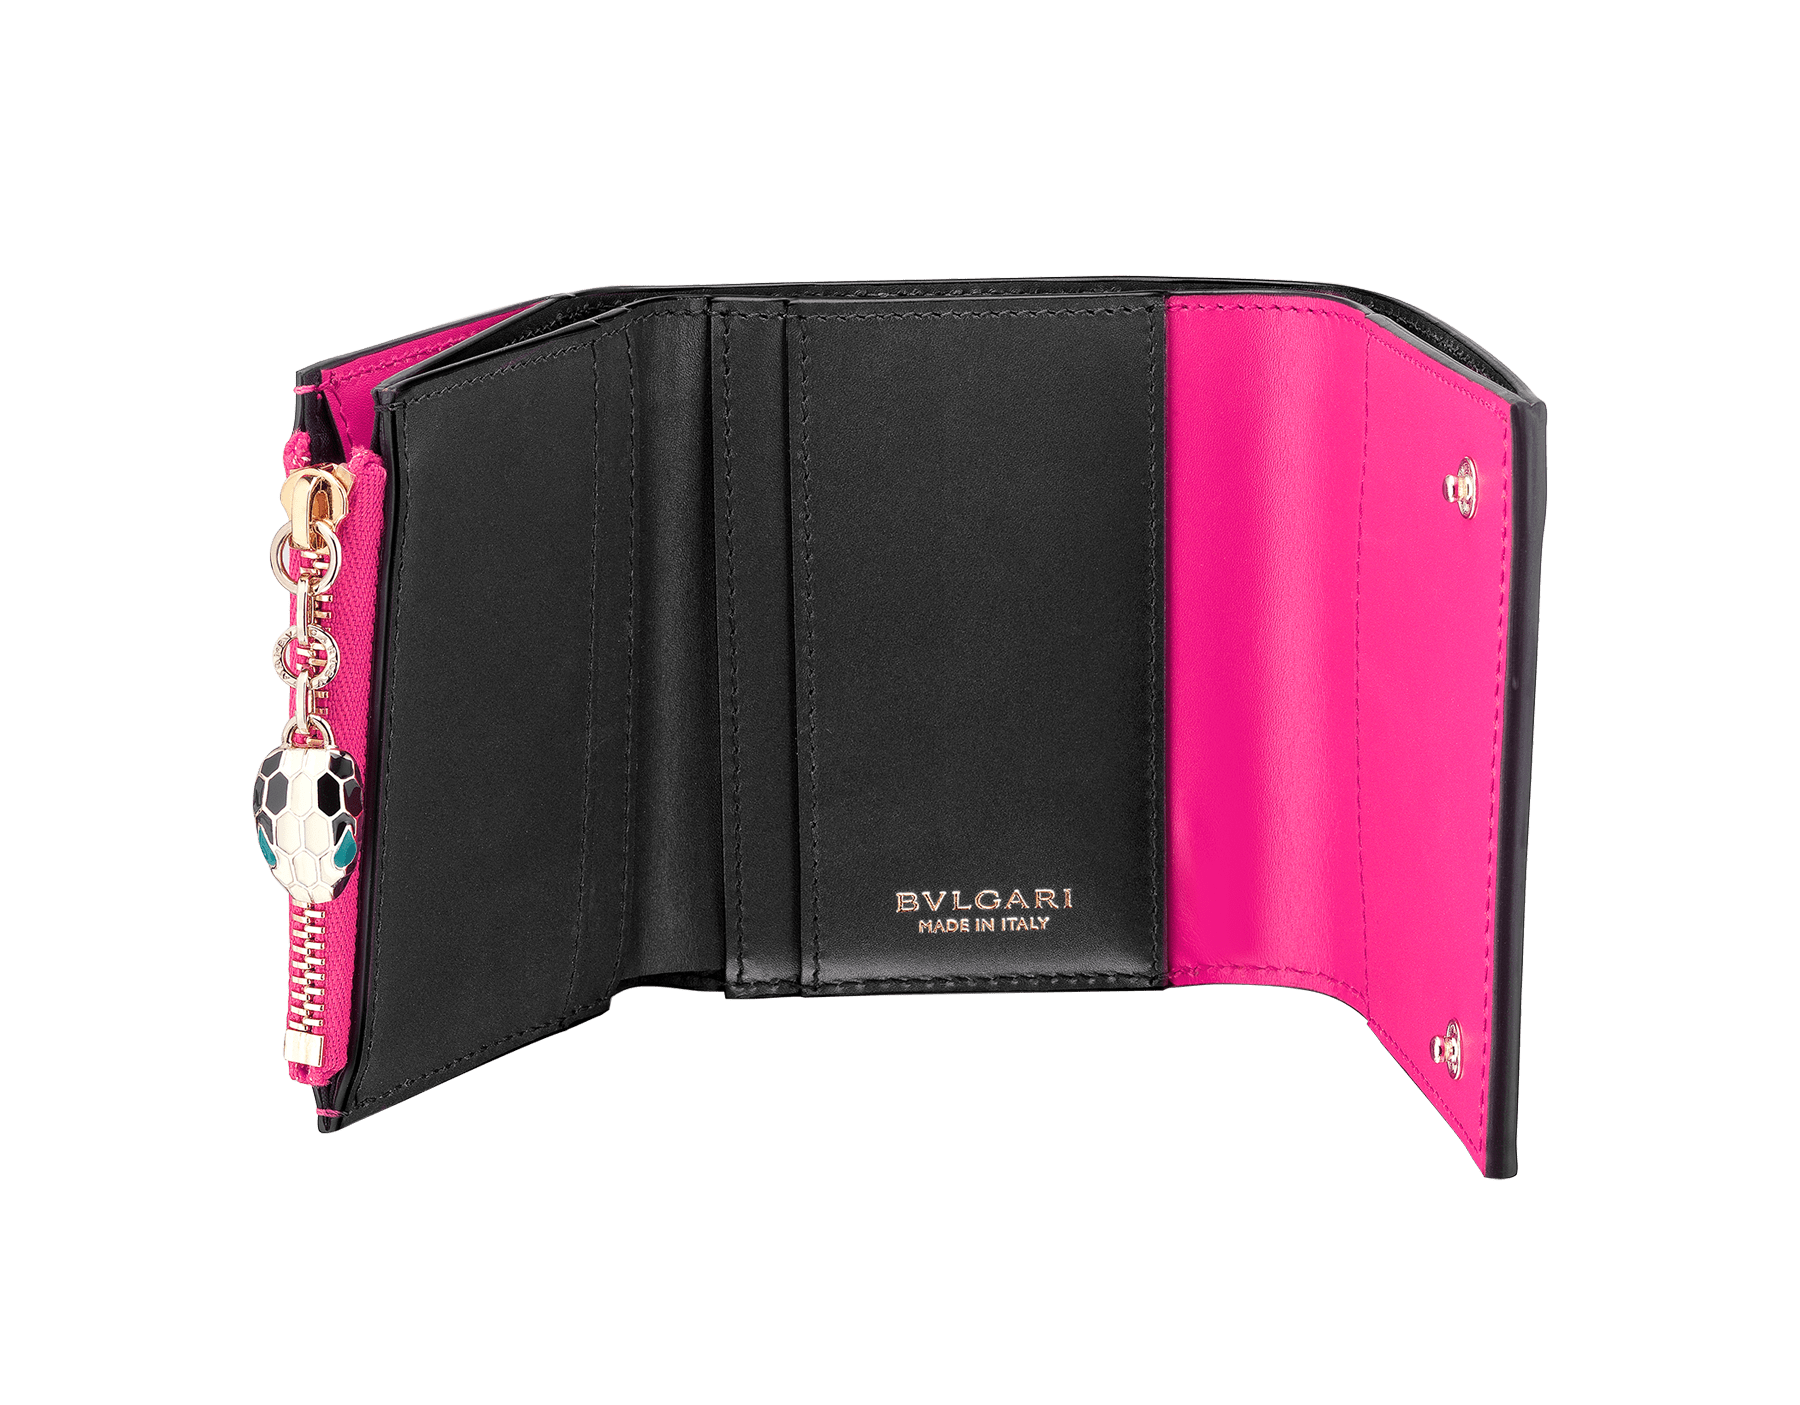 Serpenti Forever super compact wallet in Roman garnet and pink spinel calf leather. Iconic snakehead stud closure in black and white enamel with green malachite enamel eyes. SEA-SUPERCOMPACT-CLa image 2